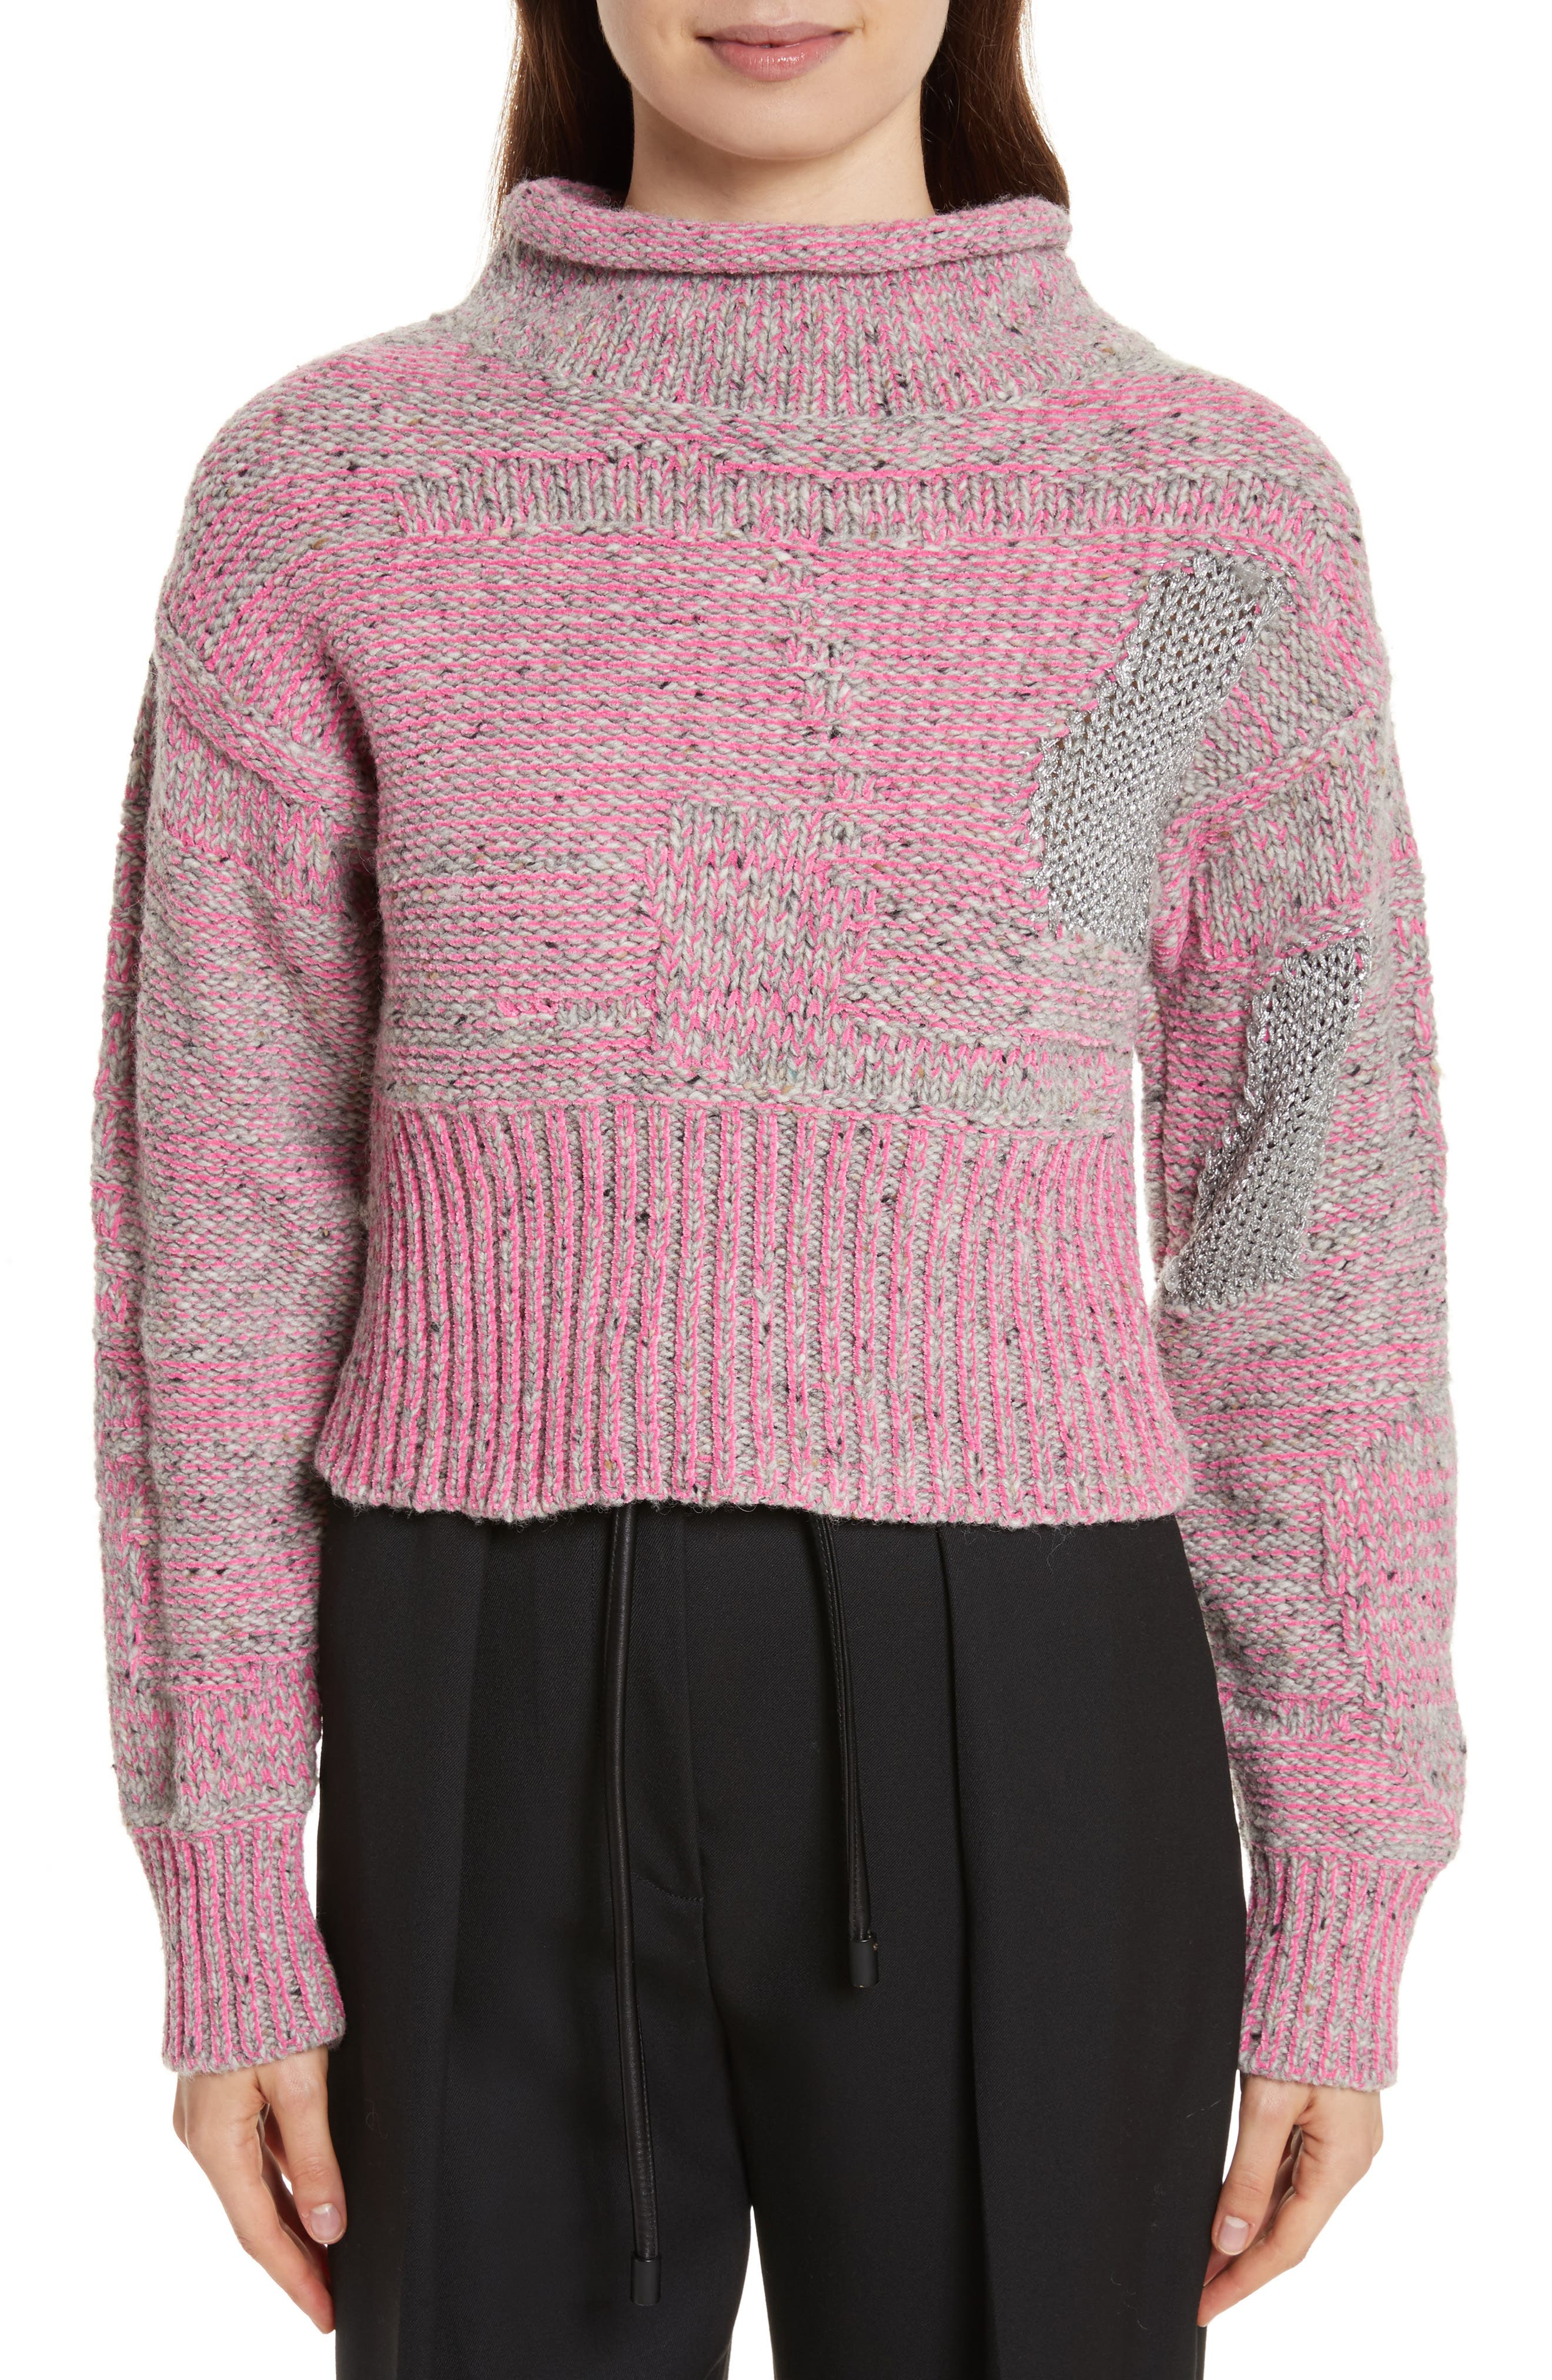 Alternate Image 1 Selected - 3.1 Phillip Lim Wool Blend Funnel Neck Sweater